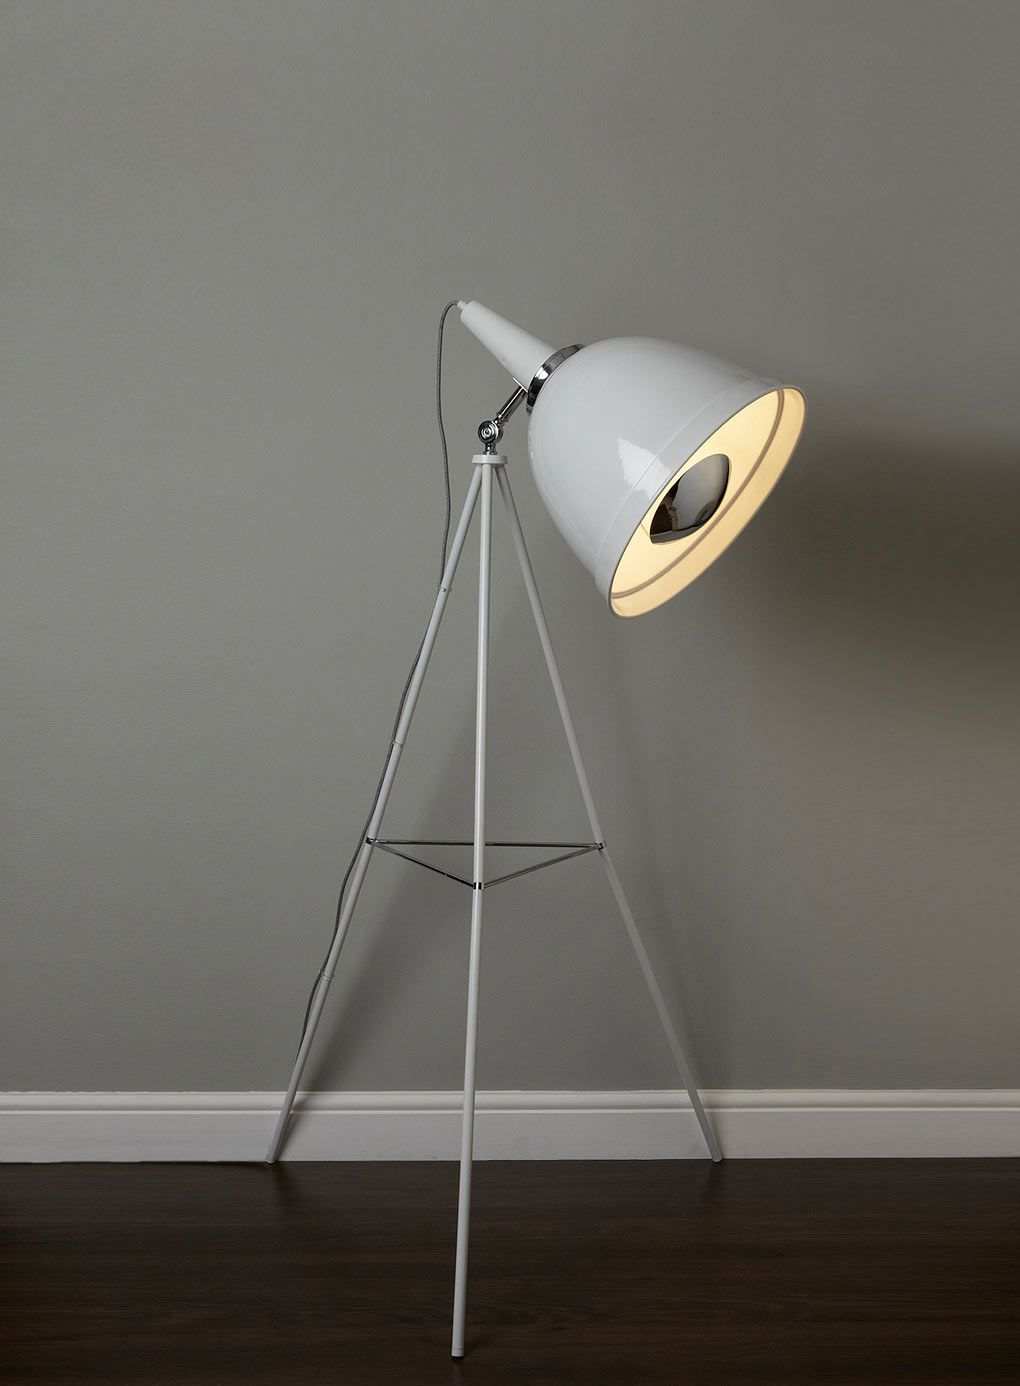 Bhs Lighting Floor Lamps: 1000+ images about Floor lamps on Pinterest | Floor lamps, Mid-century  modern and Bronze floor lamp,Lighting